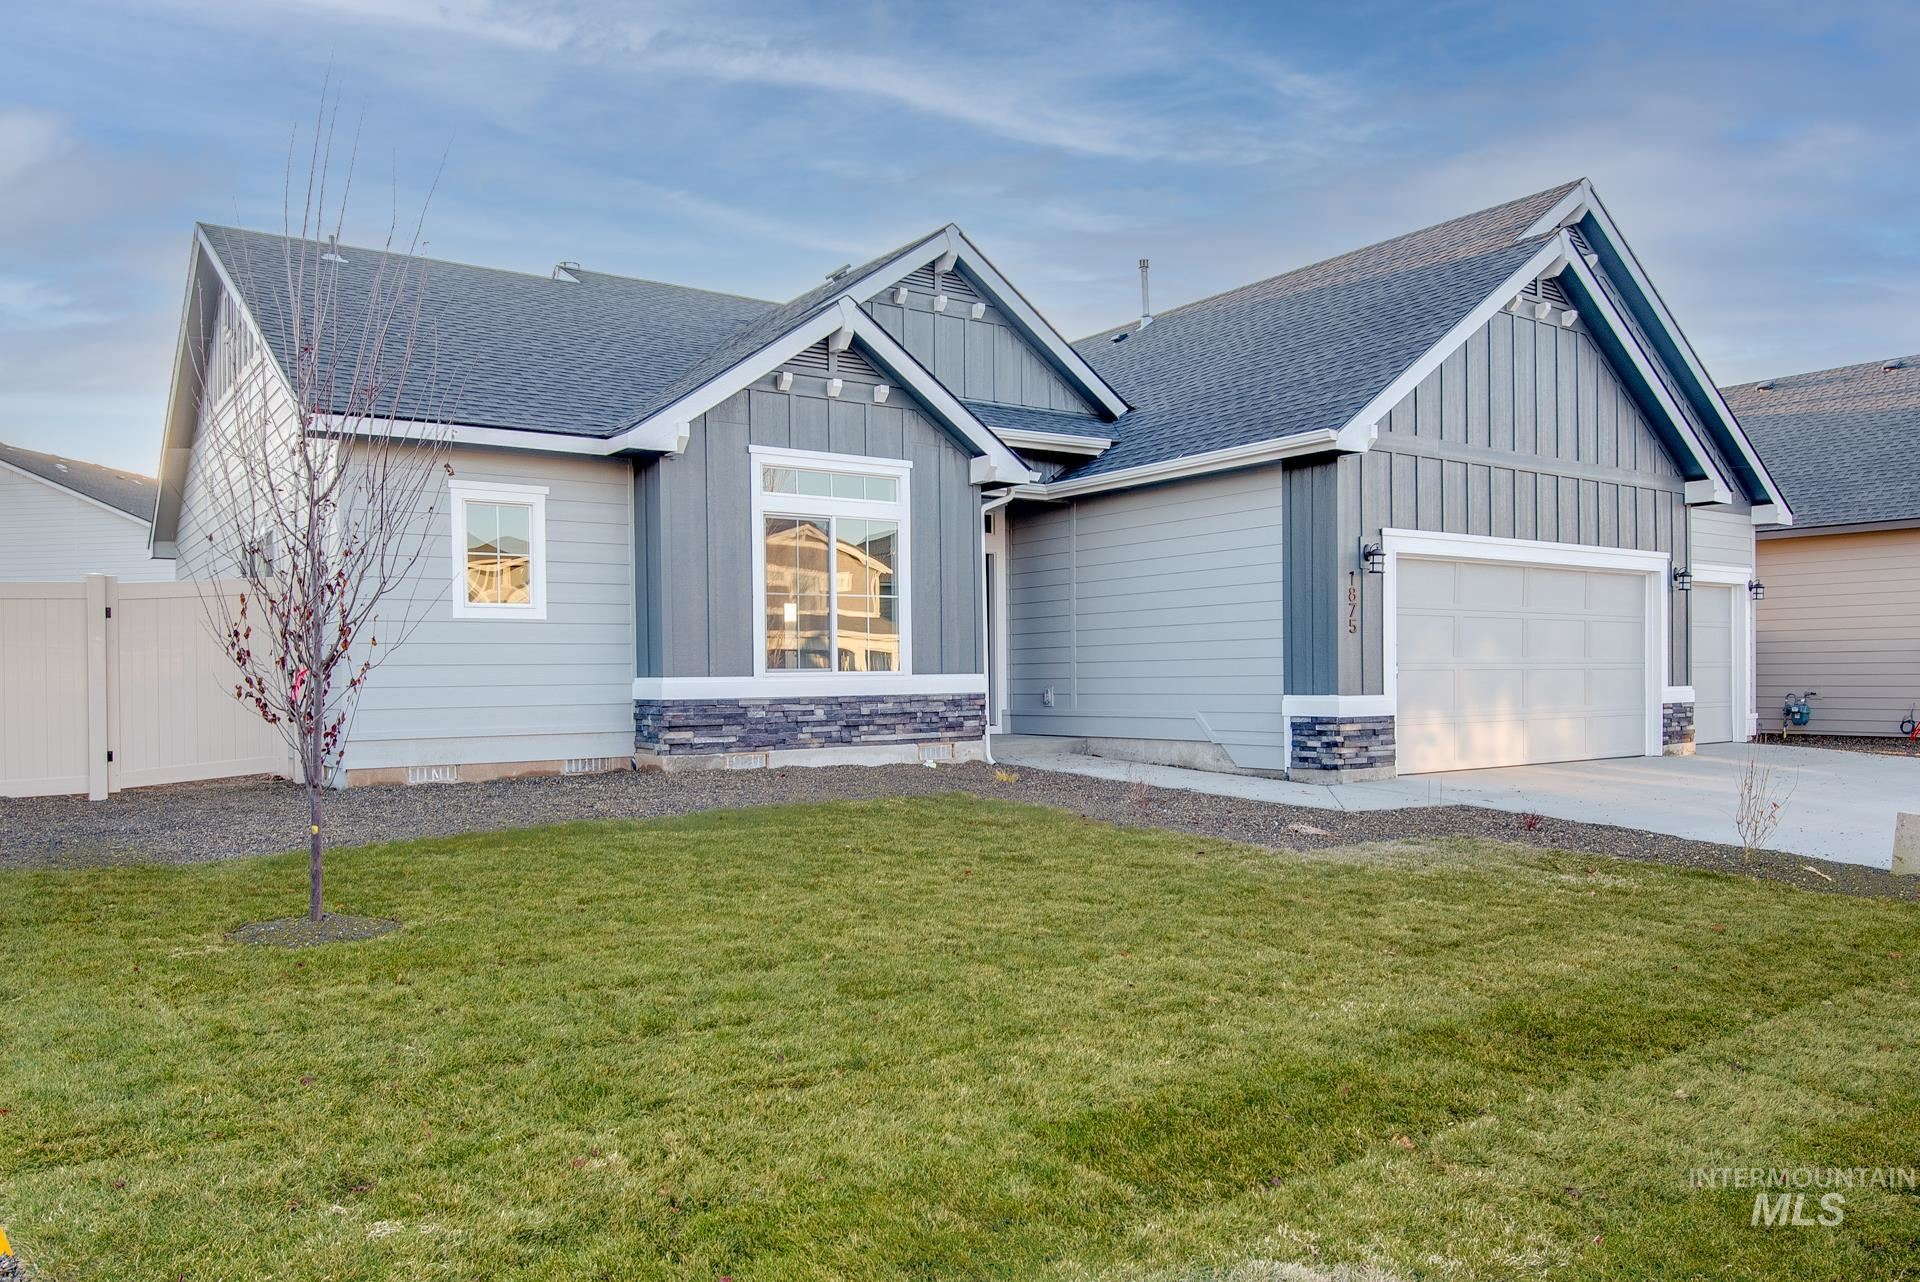 Photo of 1875 W Heavy Timber Dr, Meridian, ID 83642 (MLS # 98784224)